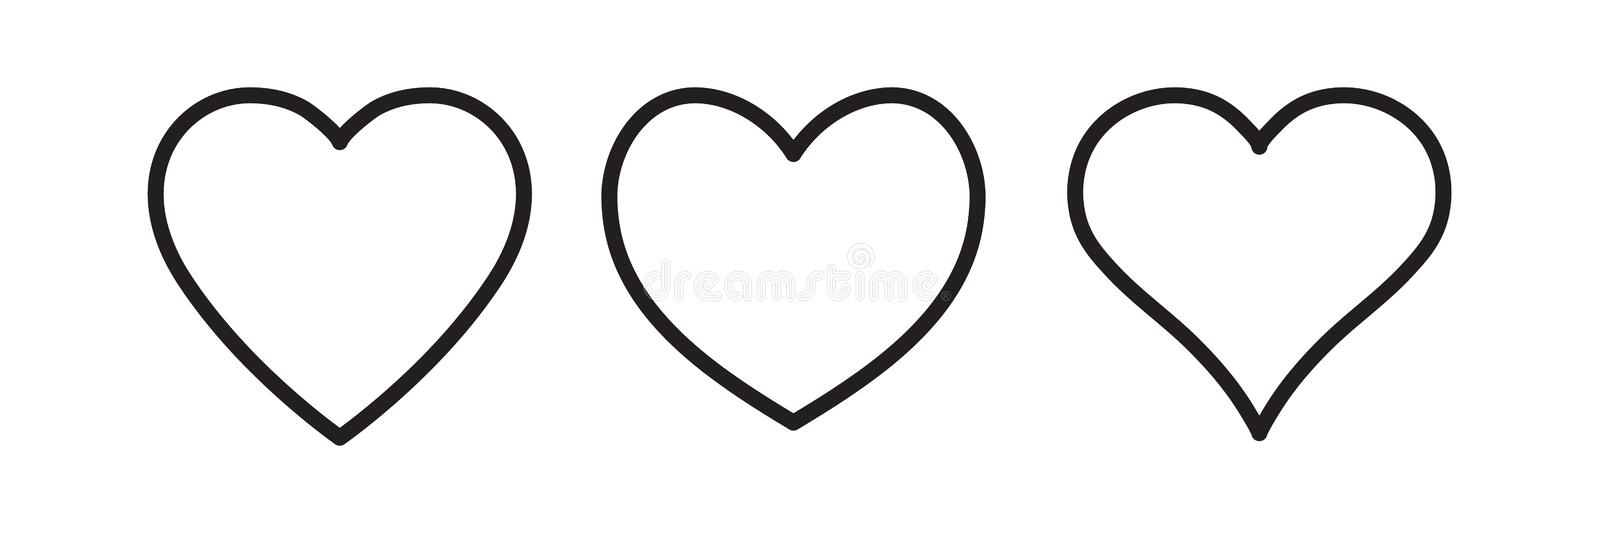 Linear heart icon royalty free illustration